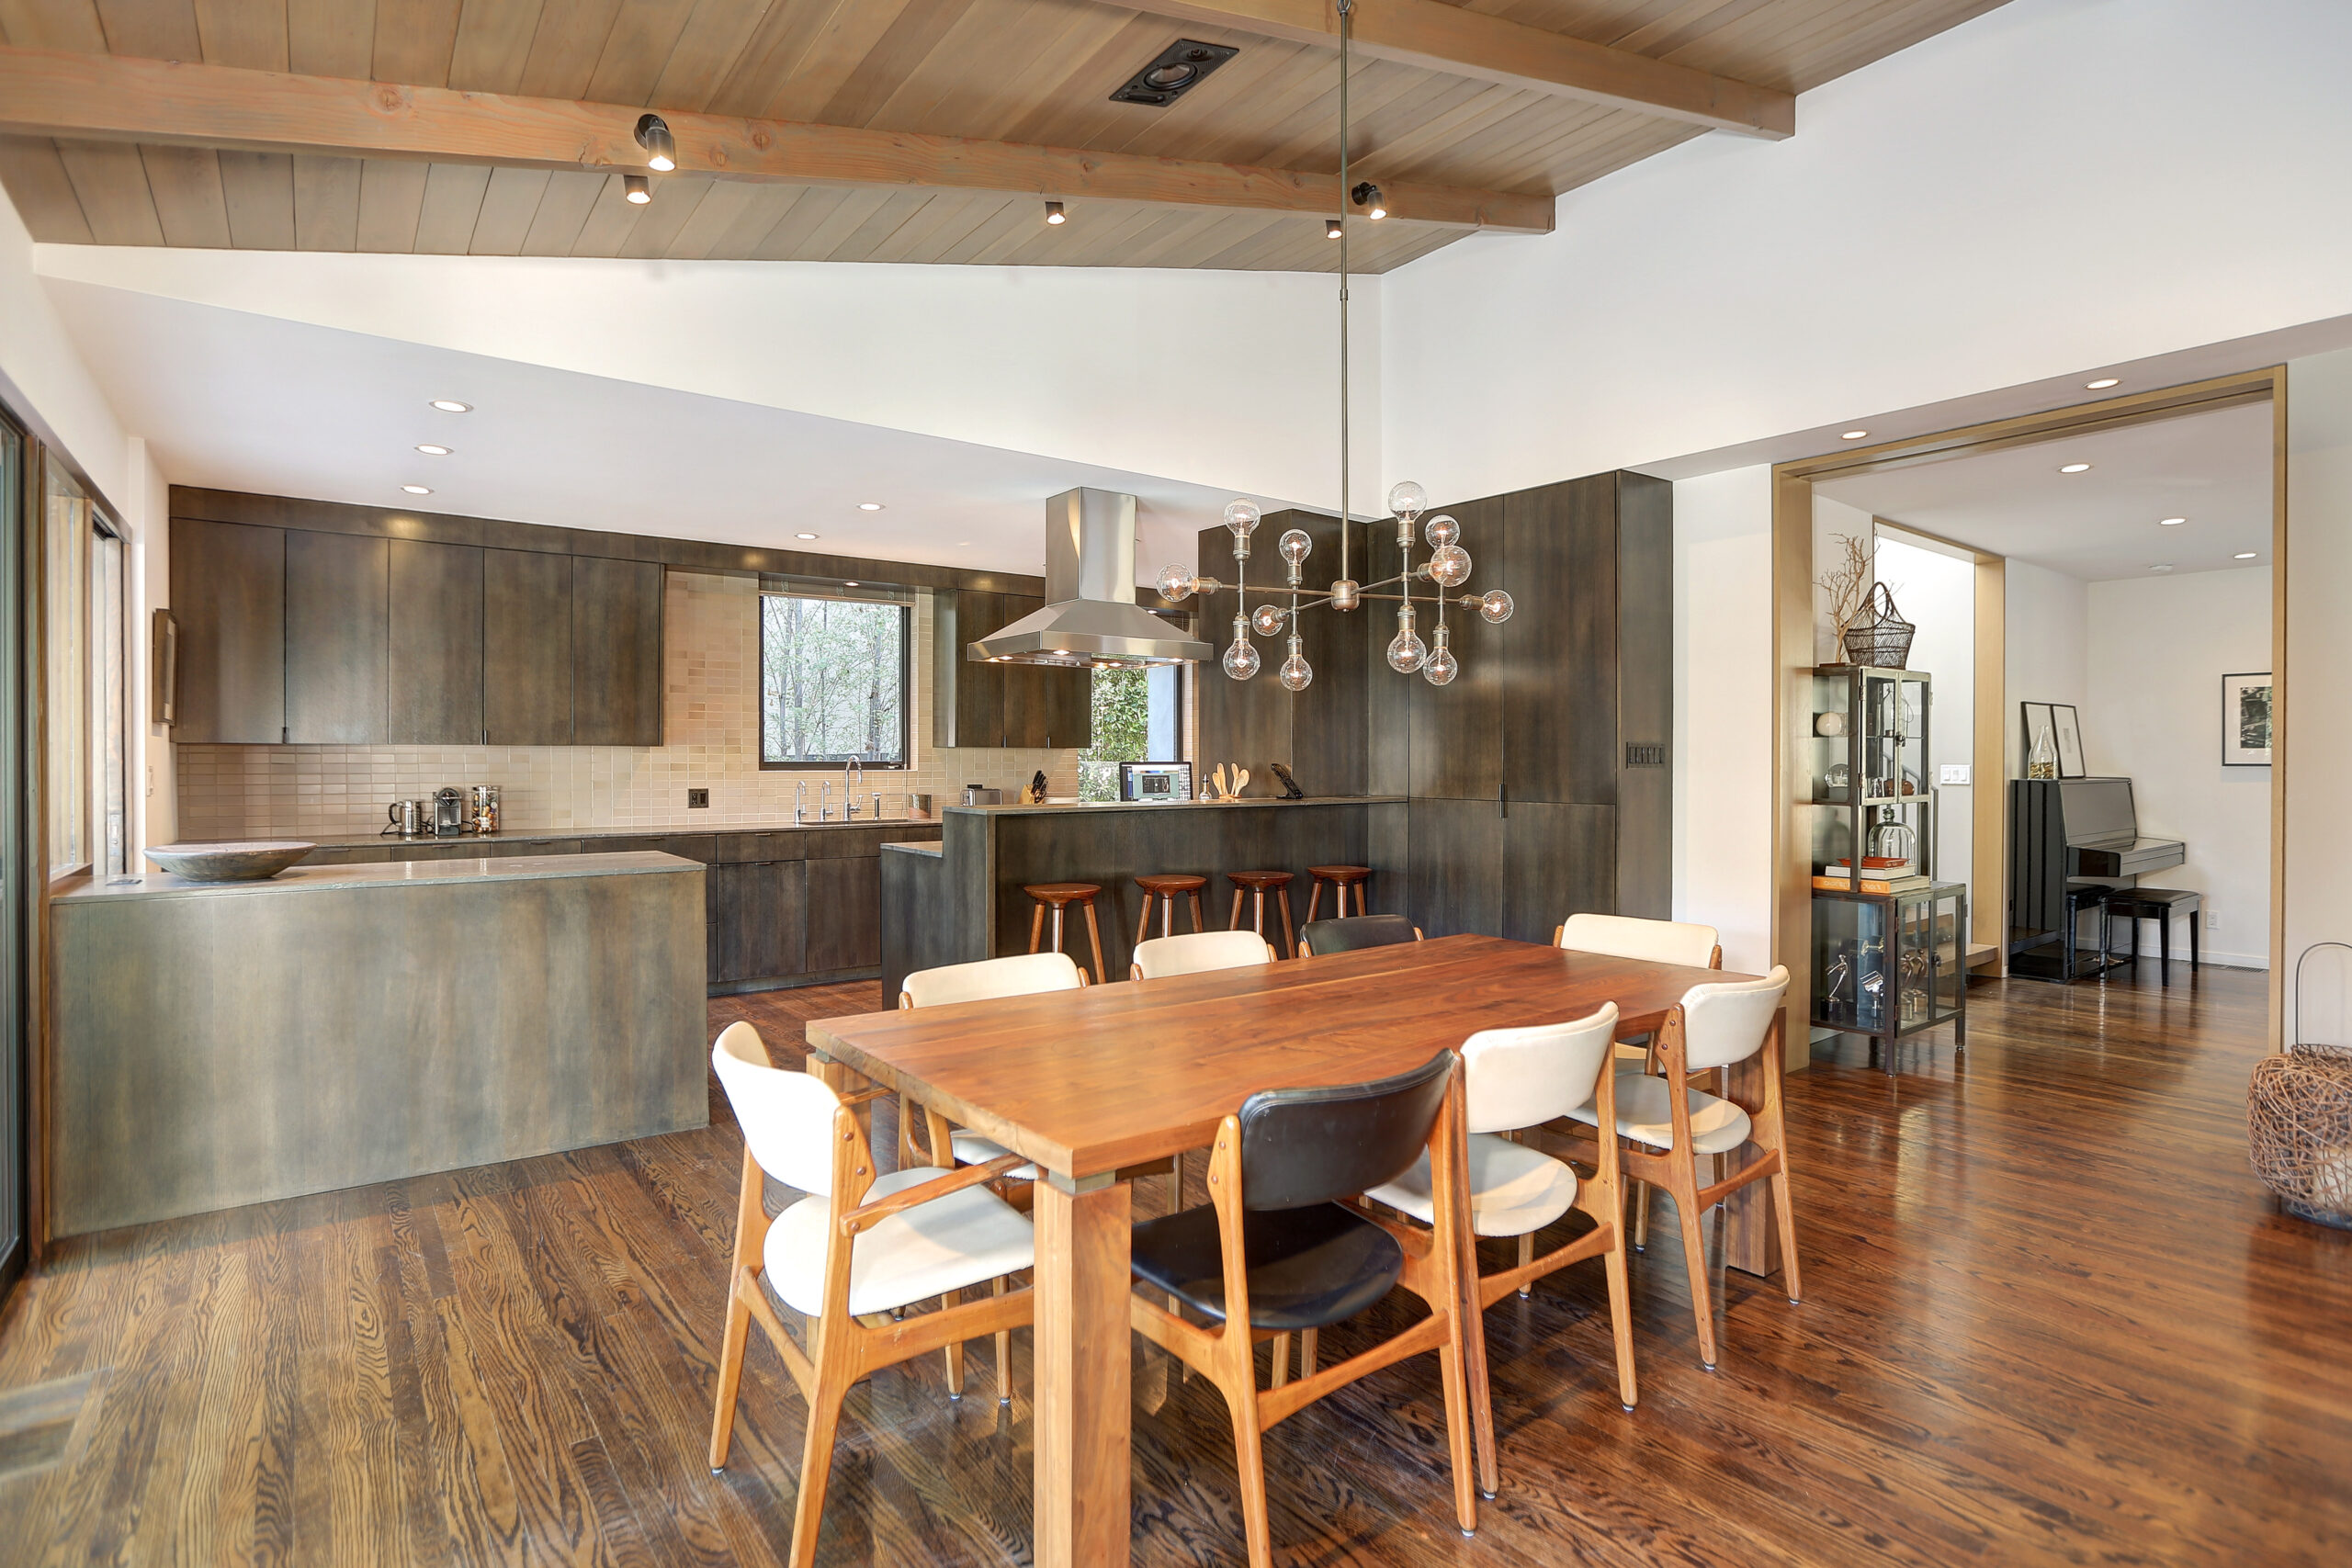 848 Greentree dining and kitchen design